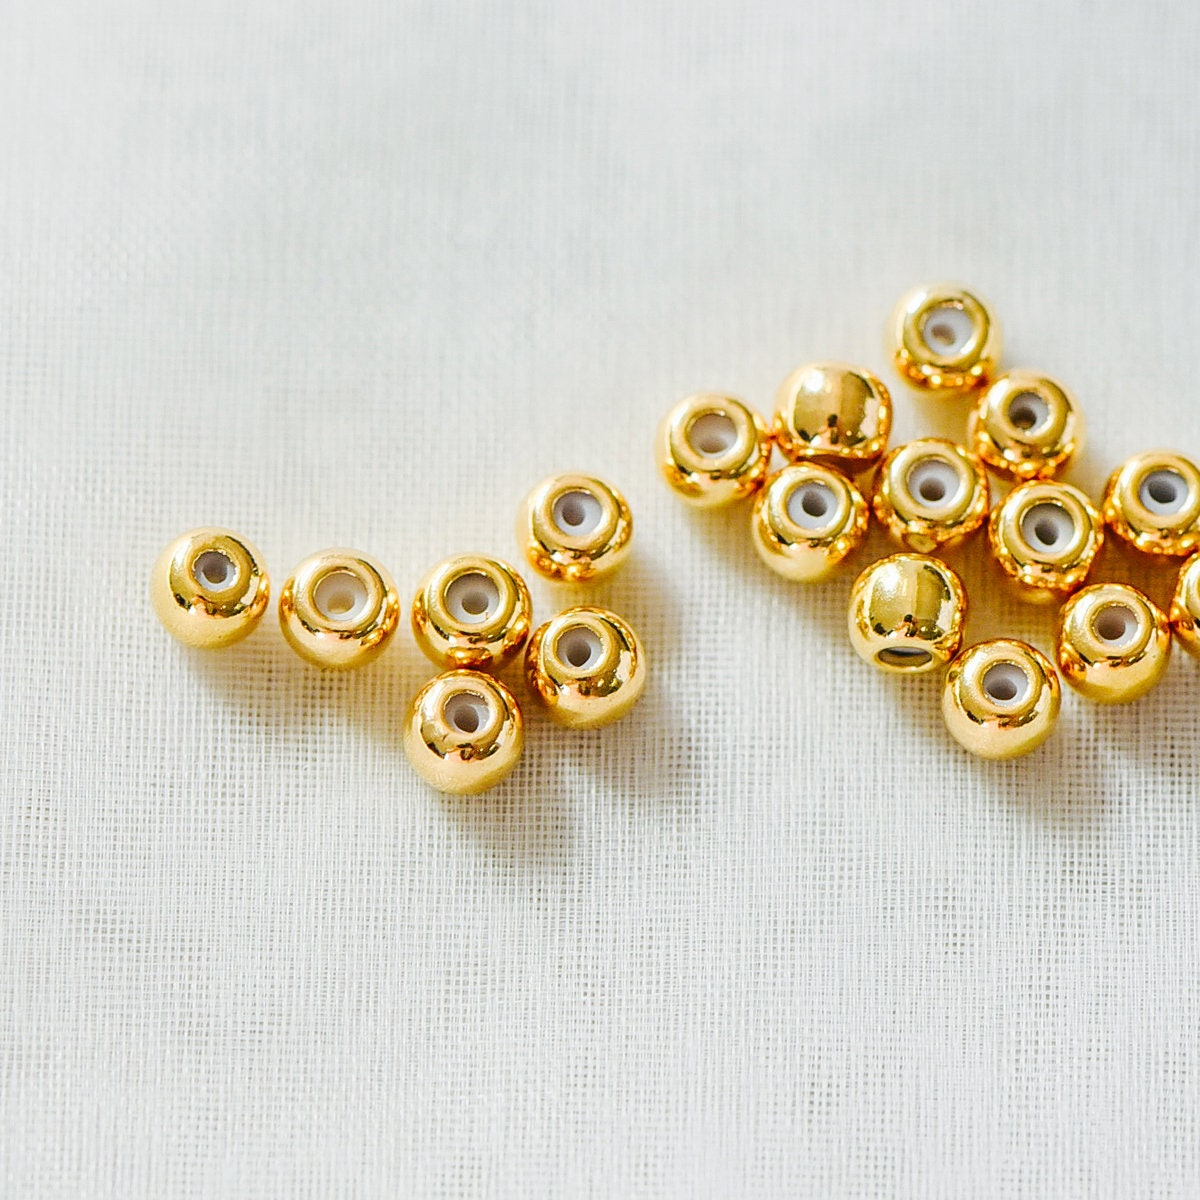 GB-345 20pcs Rondelle Rubber Stopper Beads with Loop 3mm 4mm Gold plated Brass Charm Holder Connector